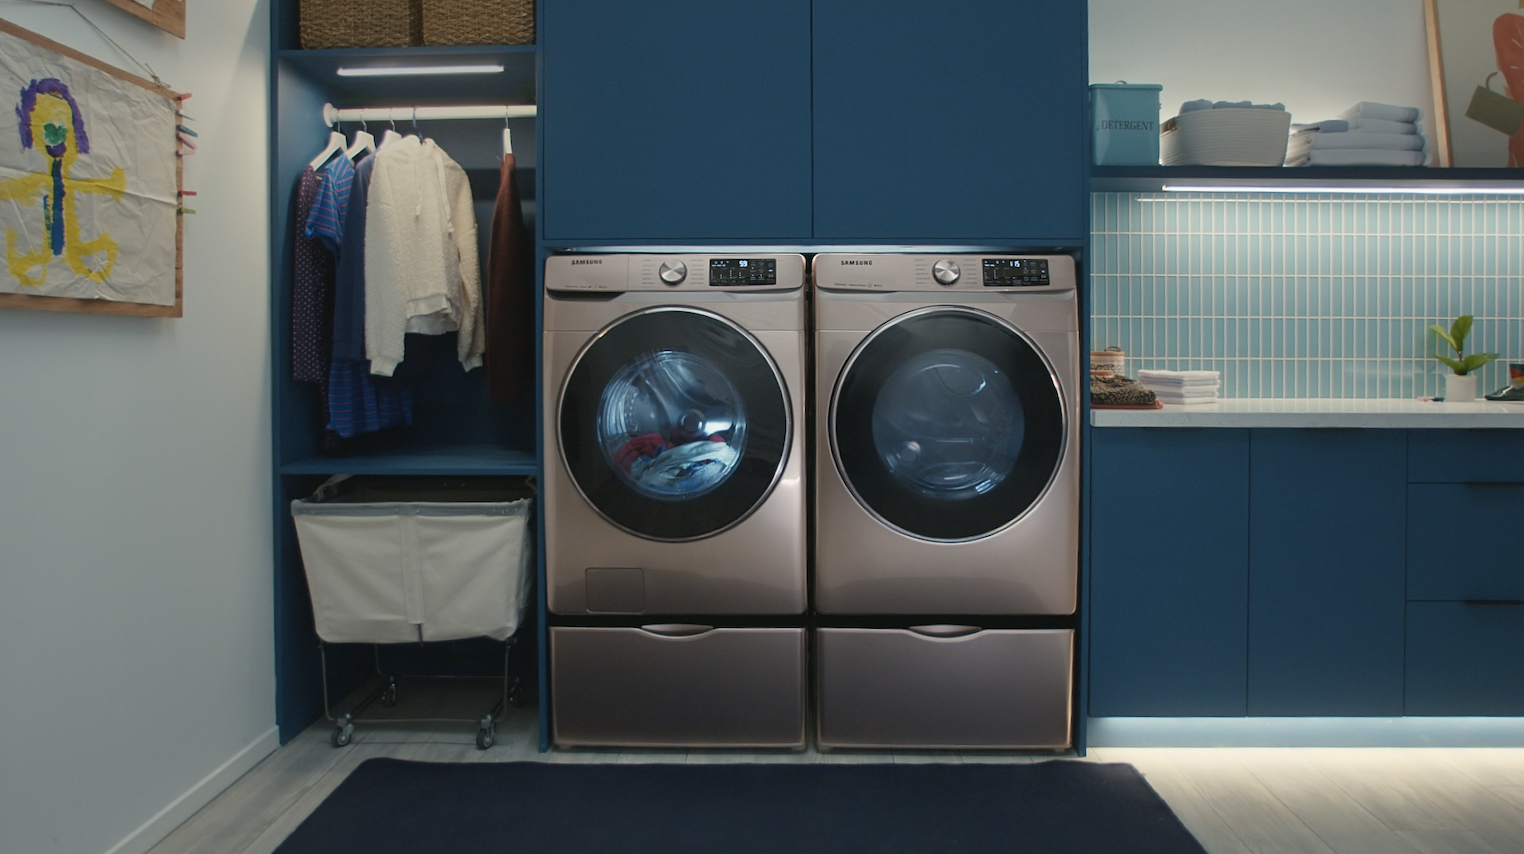 Washer - Dryer - Laundry Home Appliance 2020